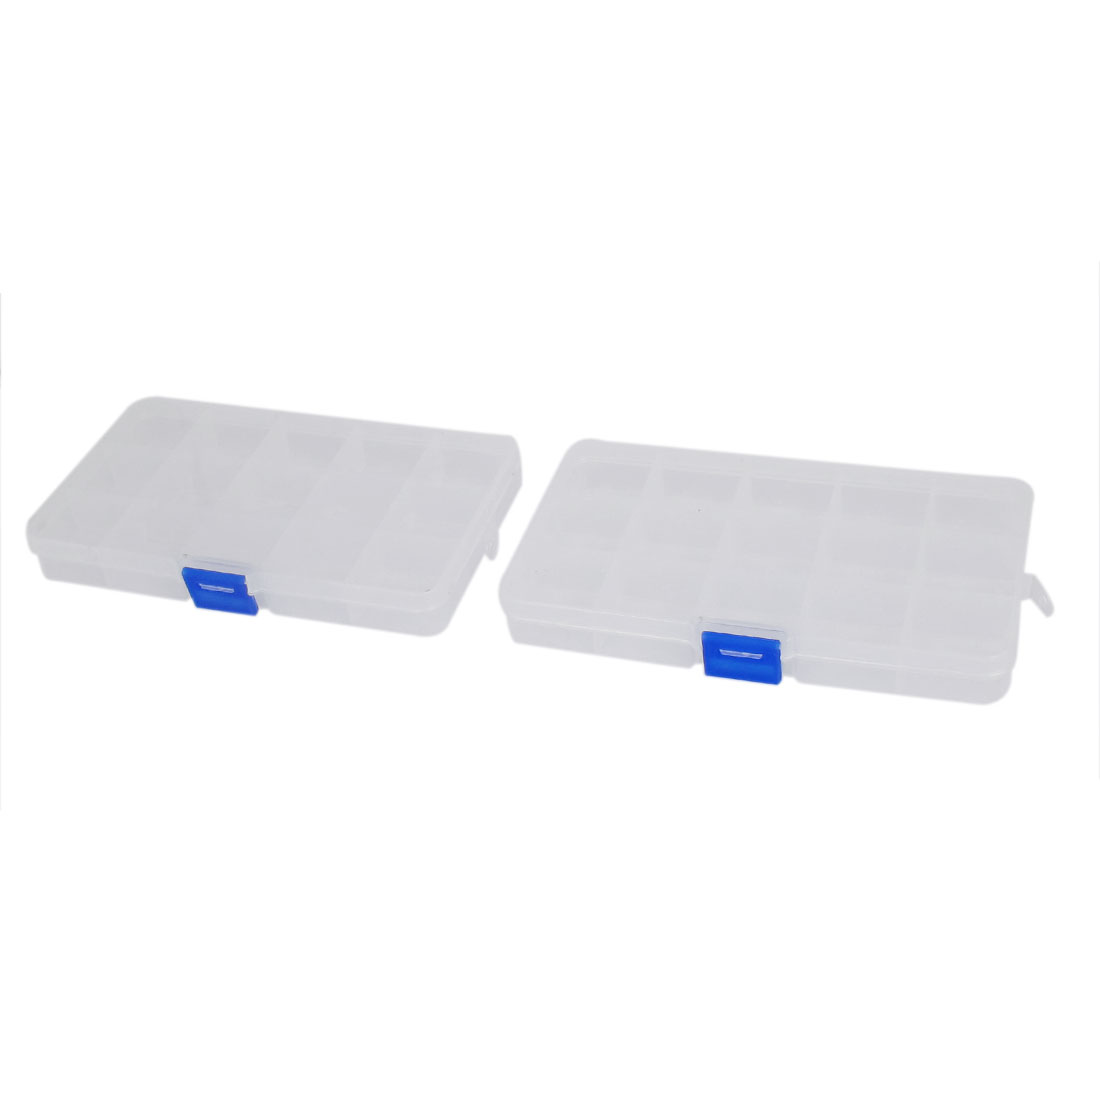 2pcs Clear White Plastic 15 Compartments Electronic Components Storage Organizer Box Case